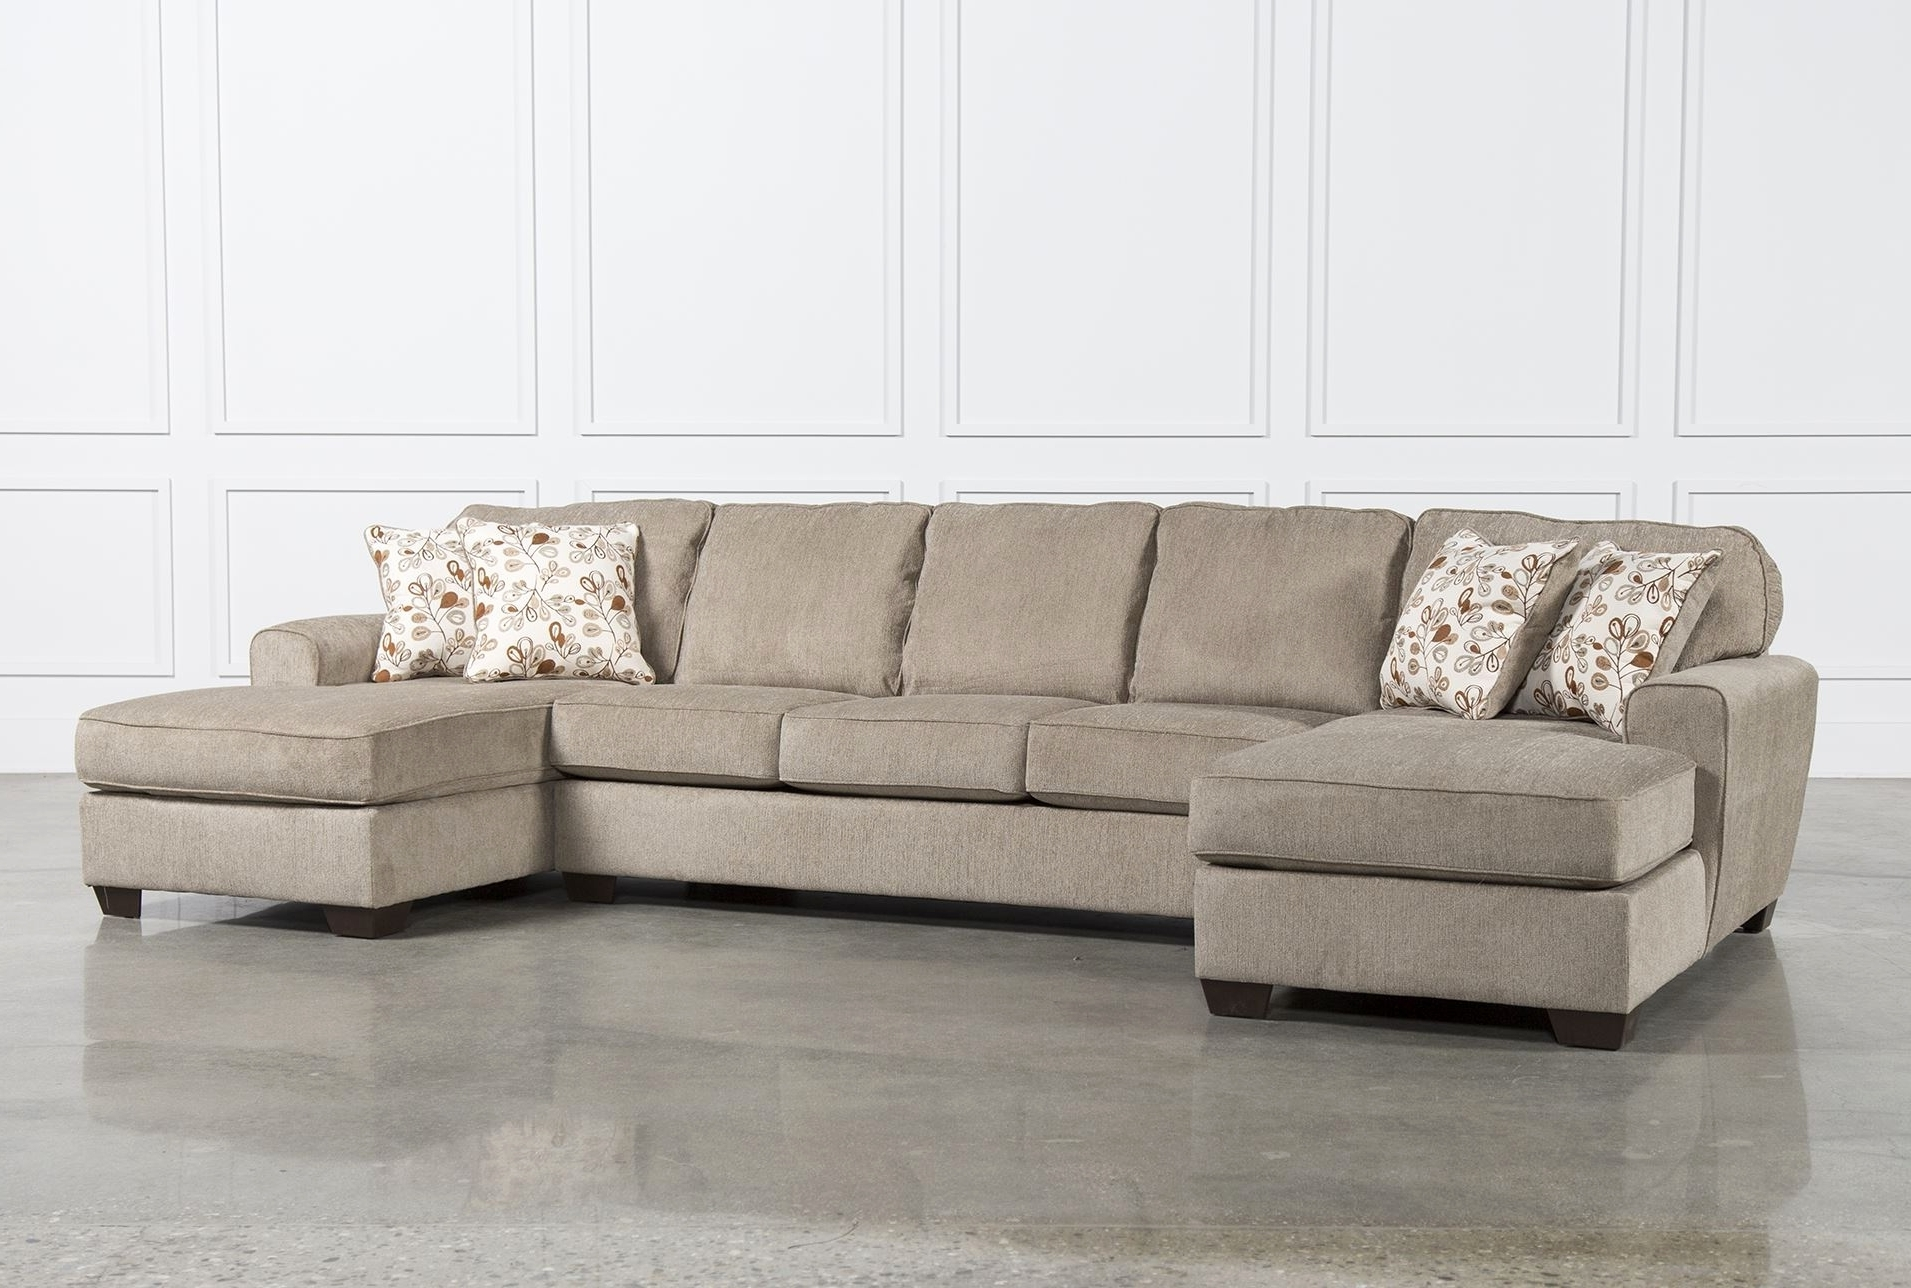 2 Piece Sectionals With Chaise Lounge Inside Most Popular Inspirational Sofa With 2 Chaise Lounge 2018 – Couches Ideas (View 6 of 15)